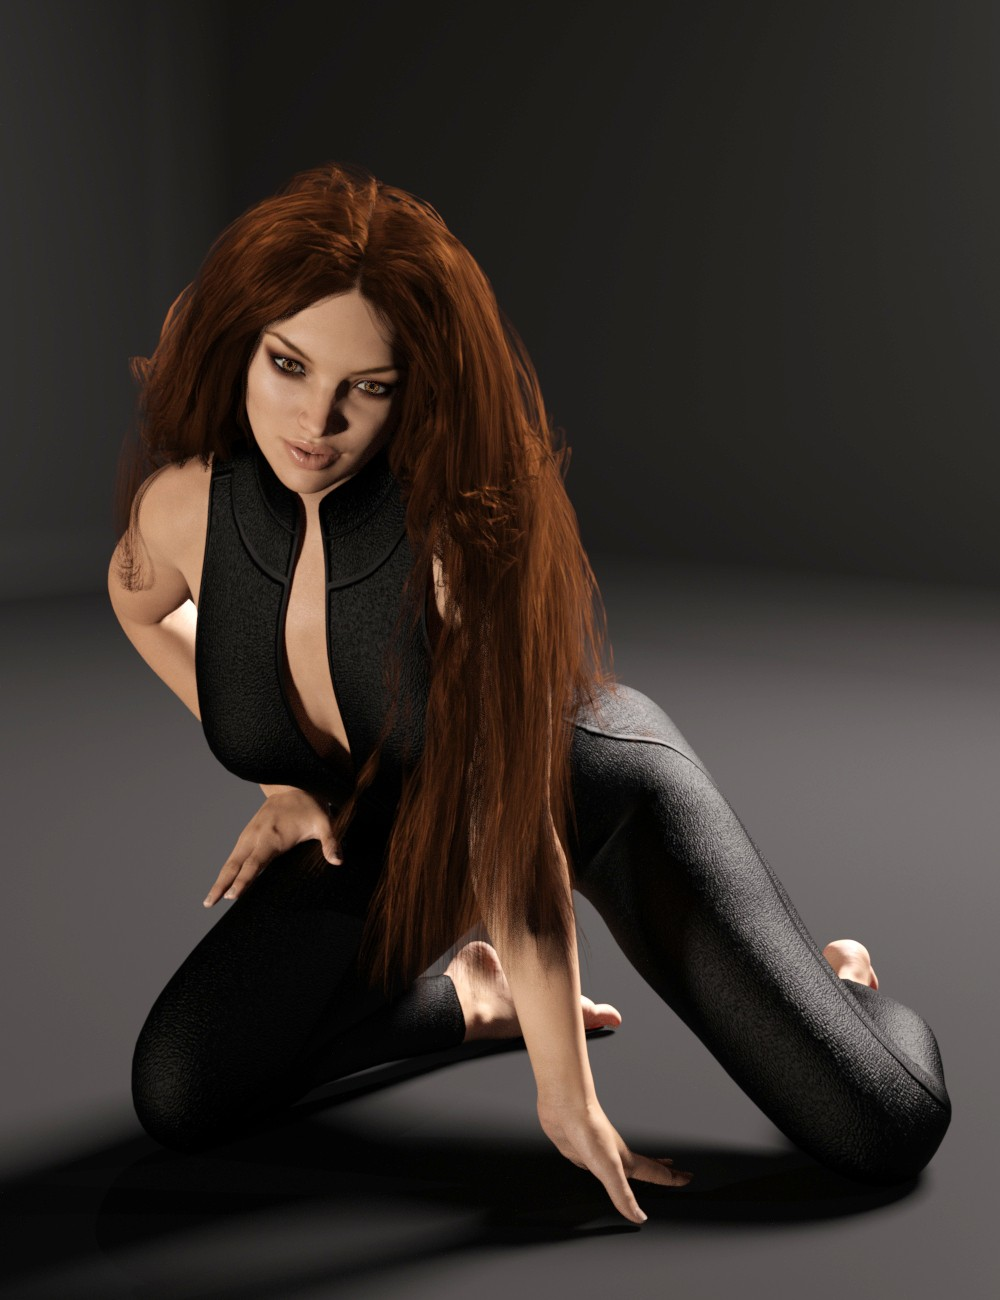 Download daz studio 3 for free daz 3d free spirit hair Free 3d